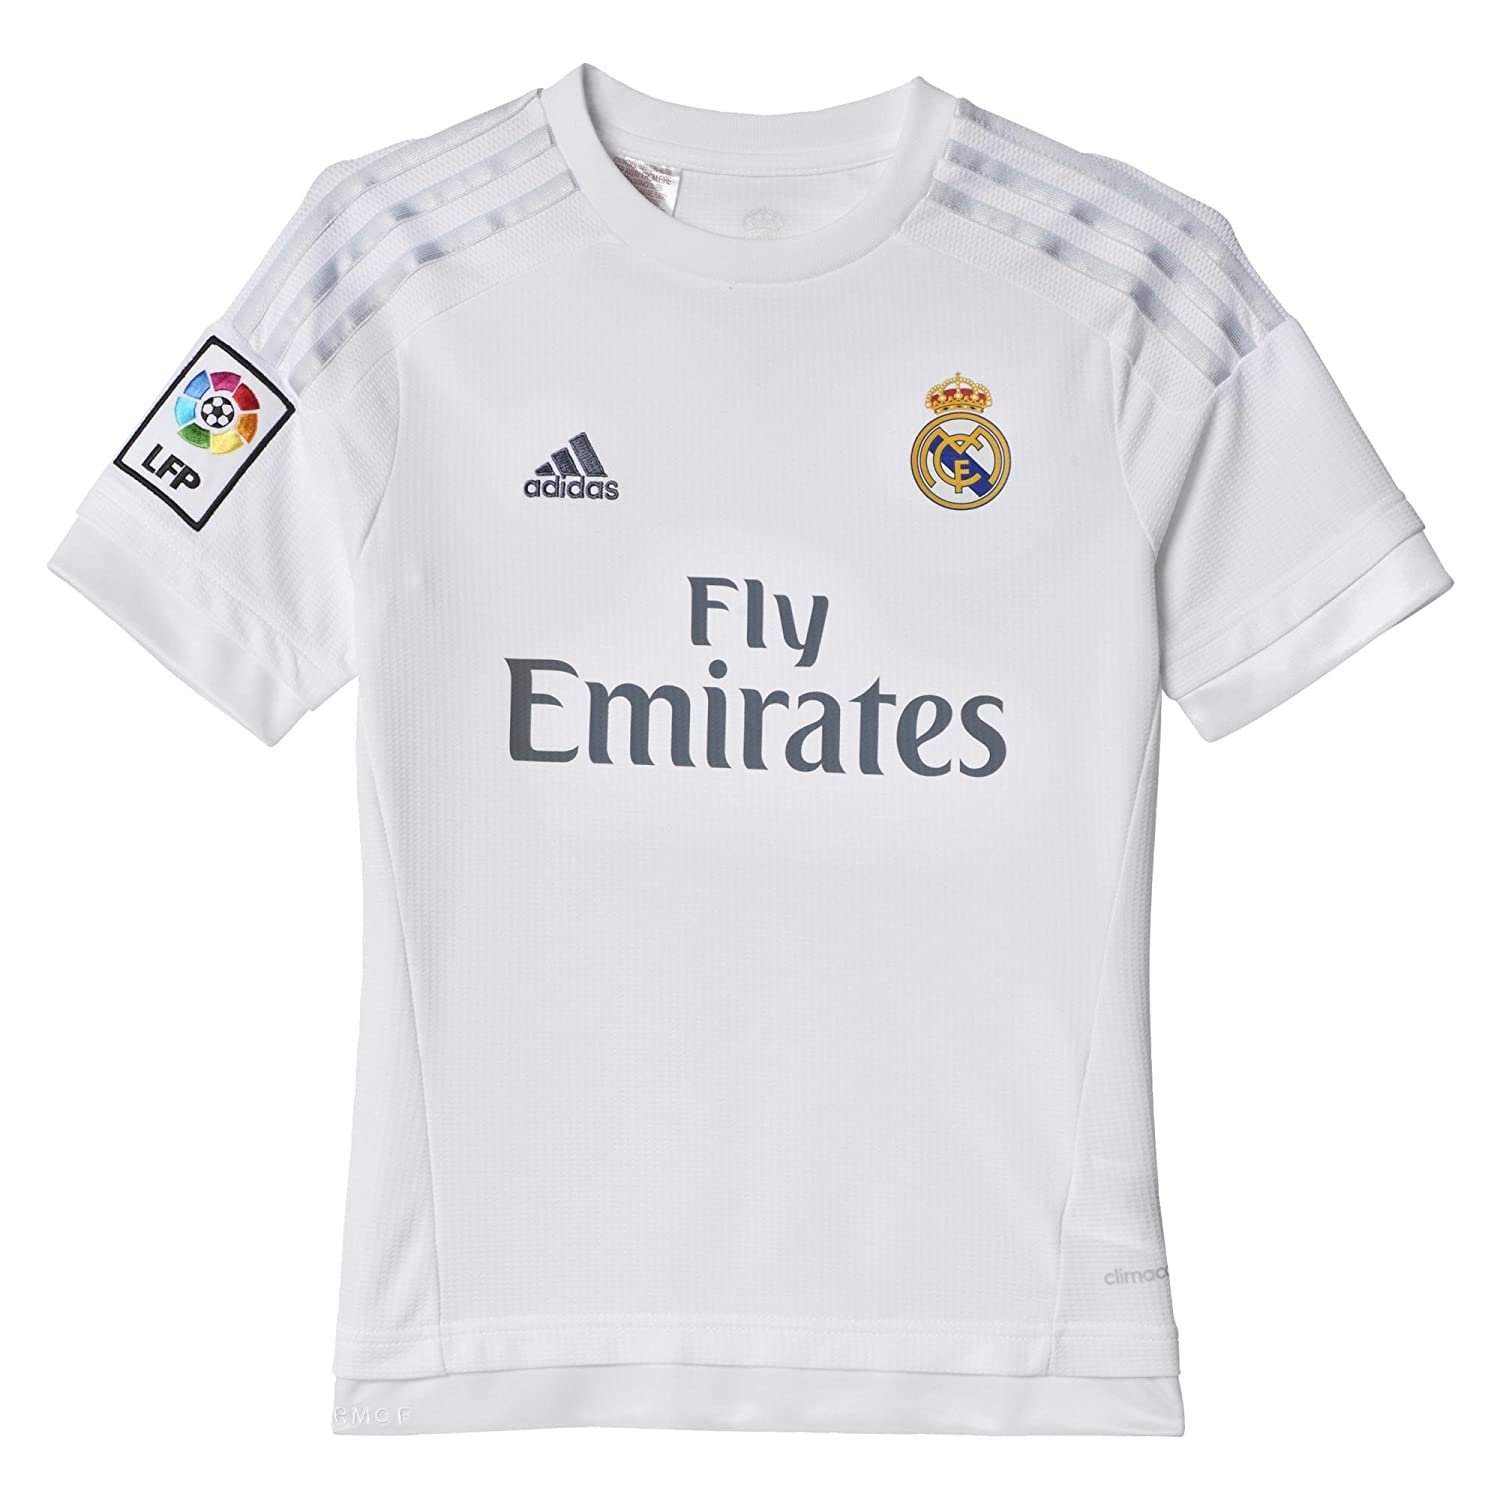 adidas S12659 Real Madrid Home Jersey Kids